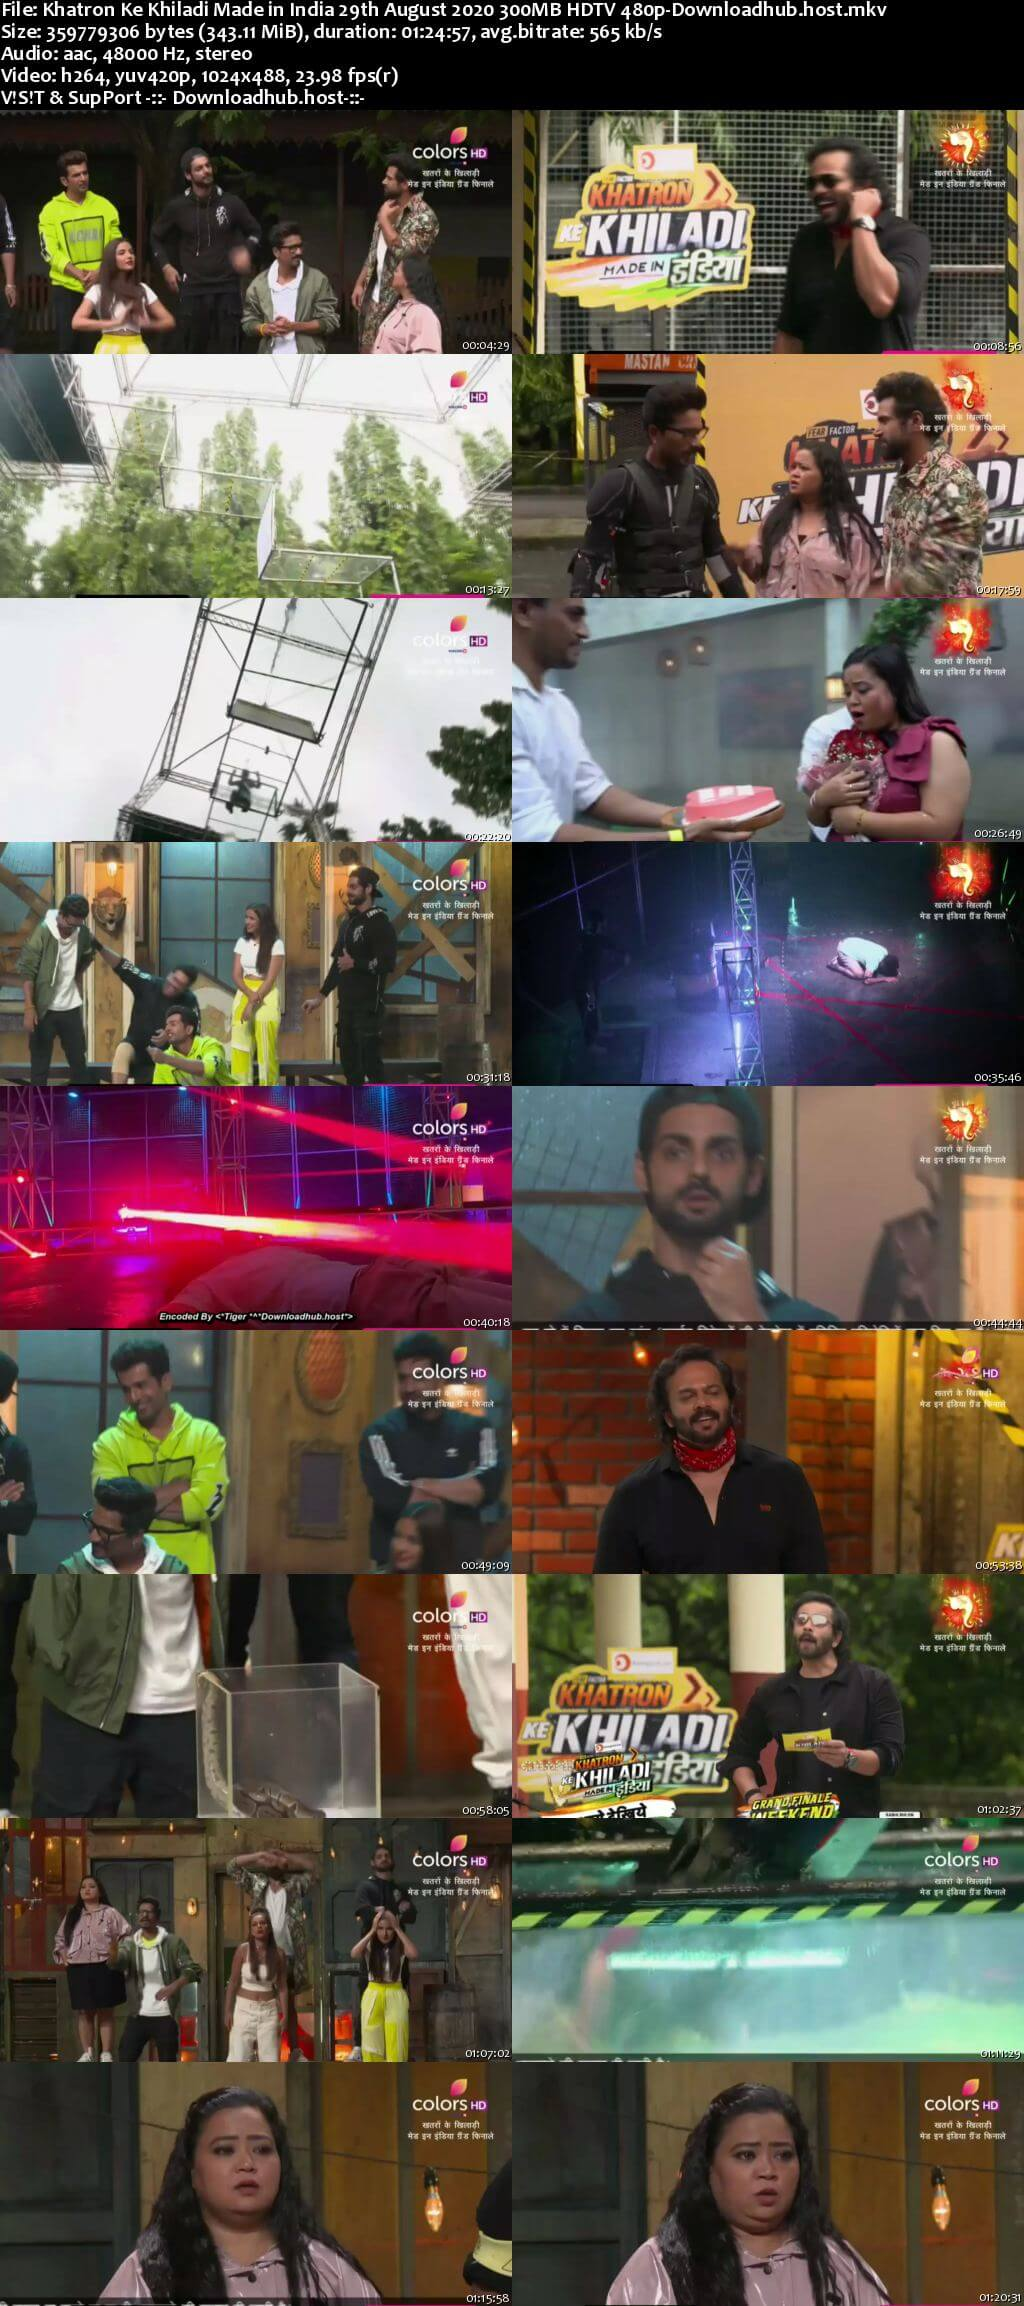 Khatron Ke Khiladi Made in India 29 August 2020 Episode 09 HDTV 480p